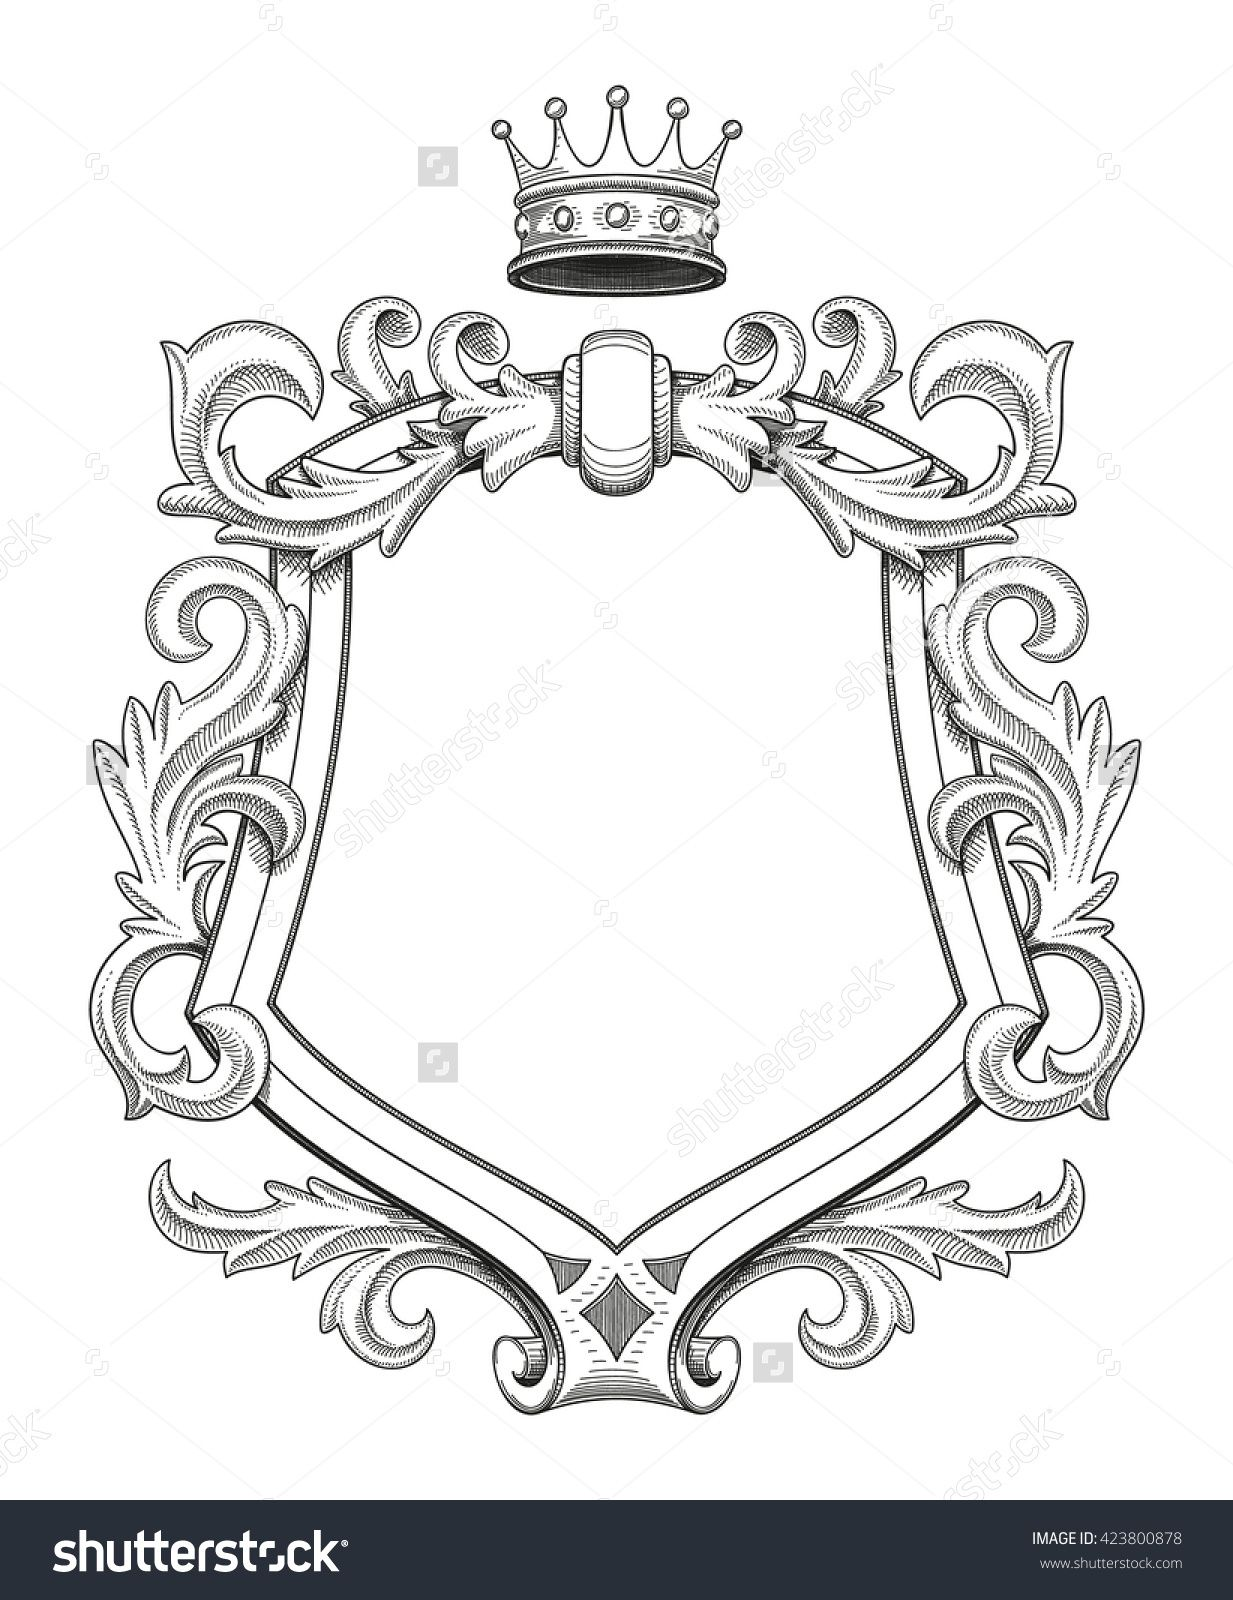 Blank Baroque Shield With Floral Ornament And Stroked